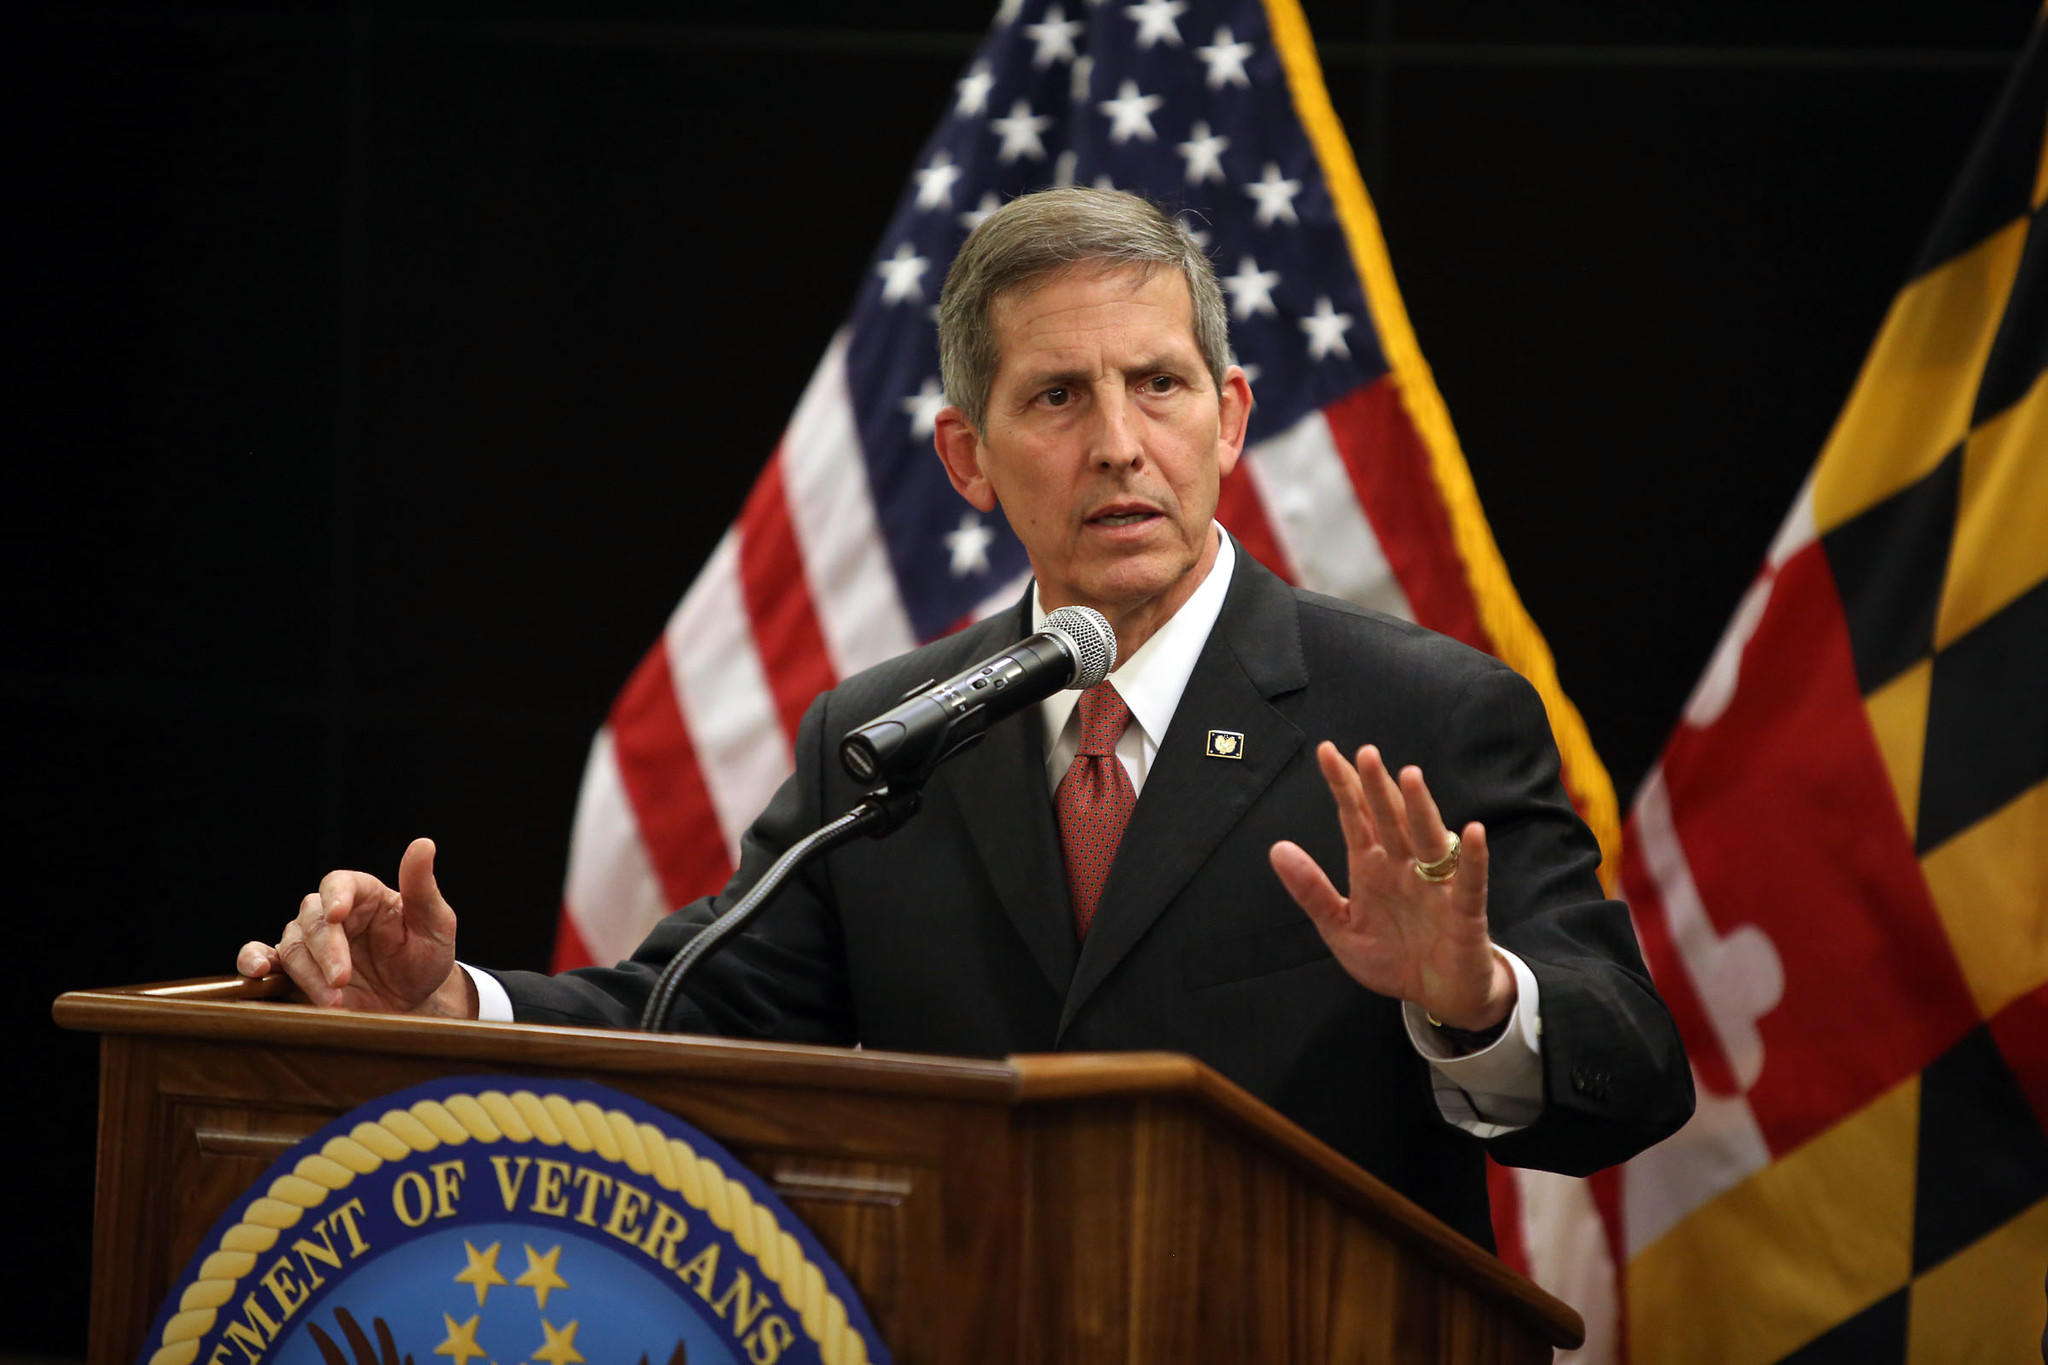 Acting Secretary of Veterans Affairs Sloan Gibson speaks during a visit at the Baltimore VA Medical Center.